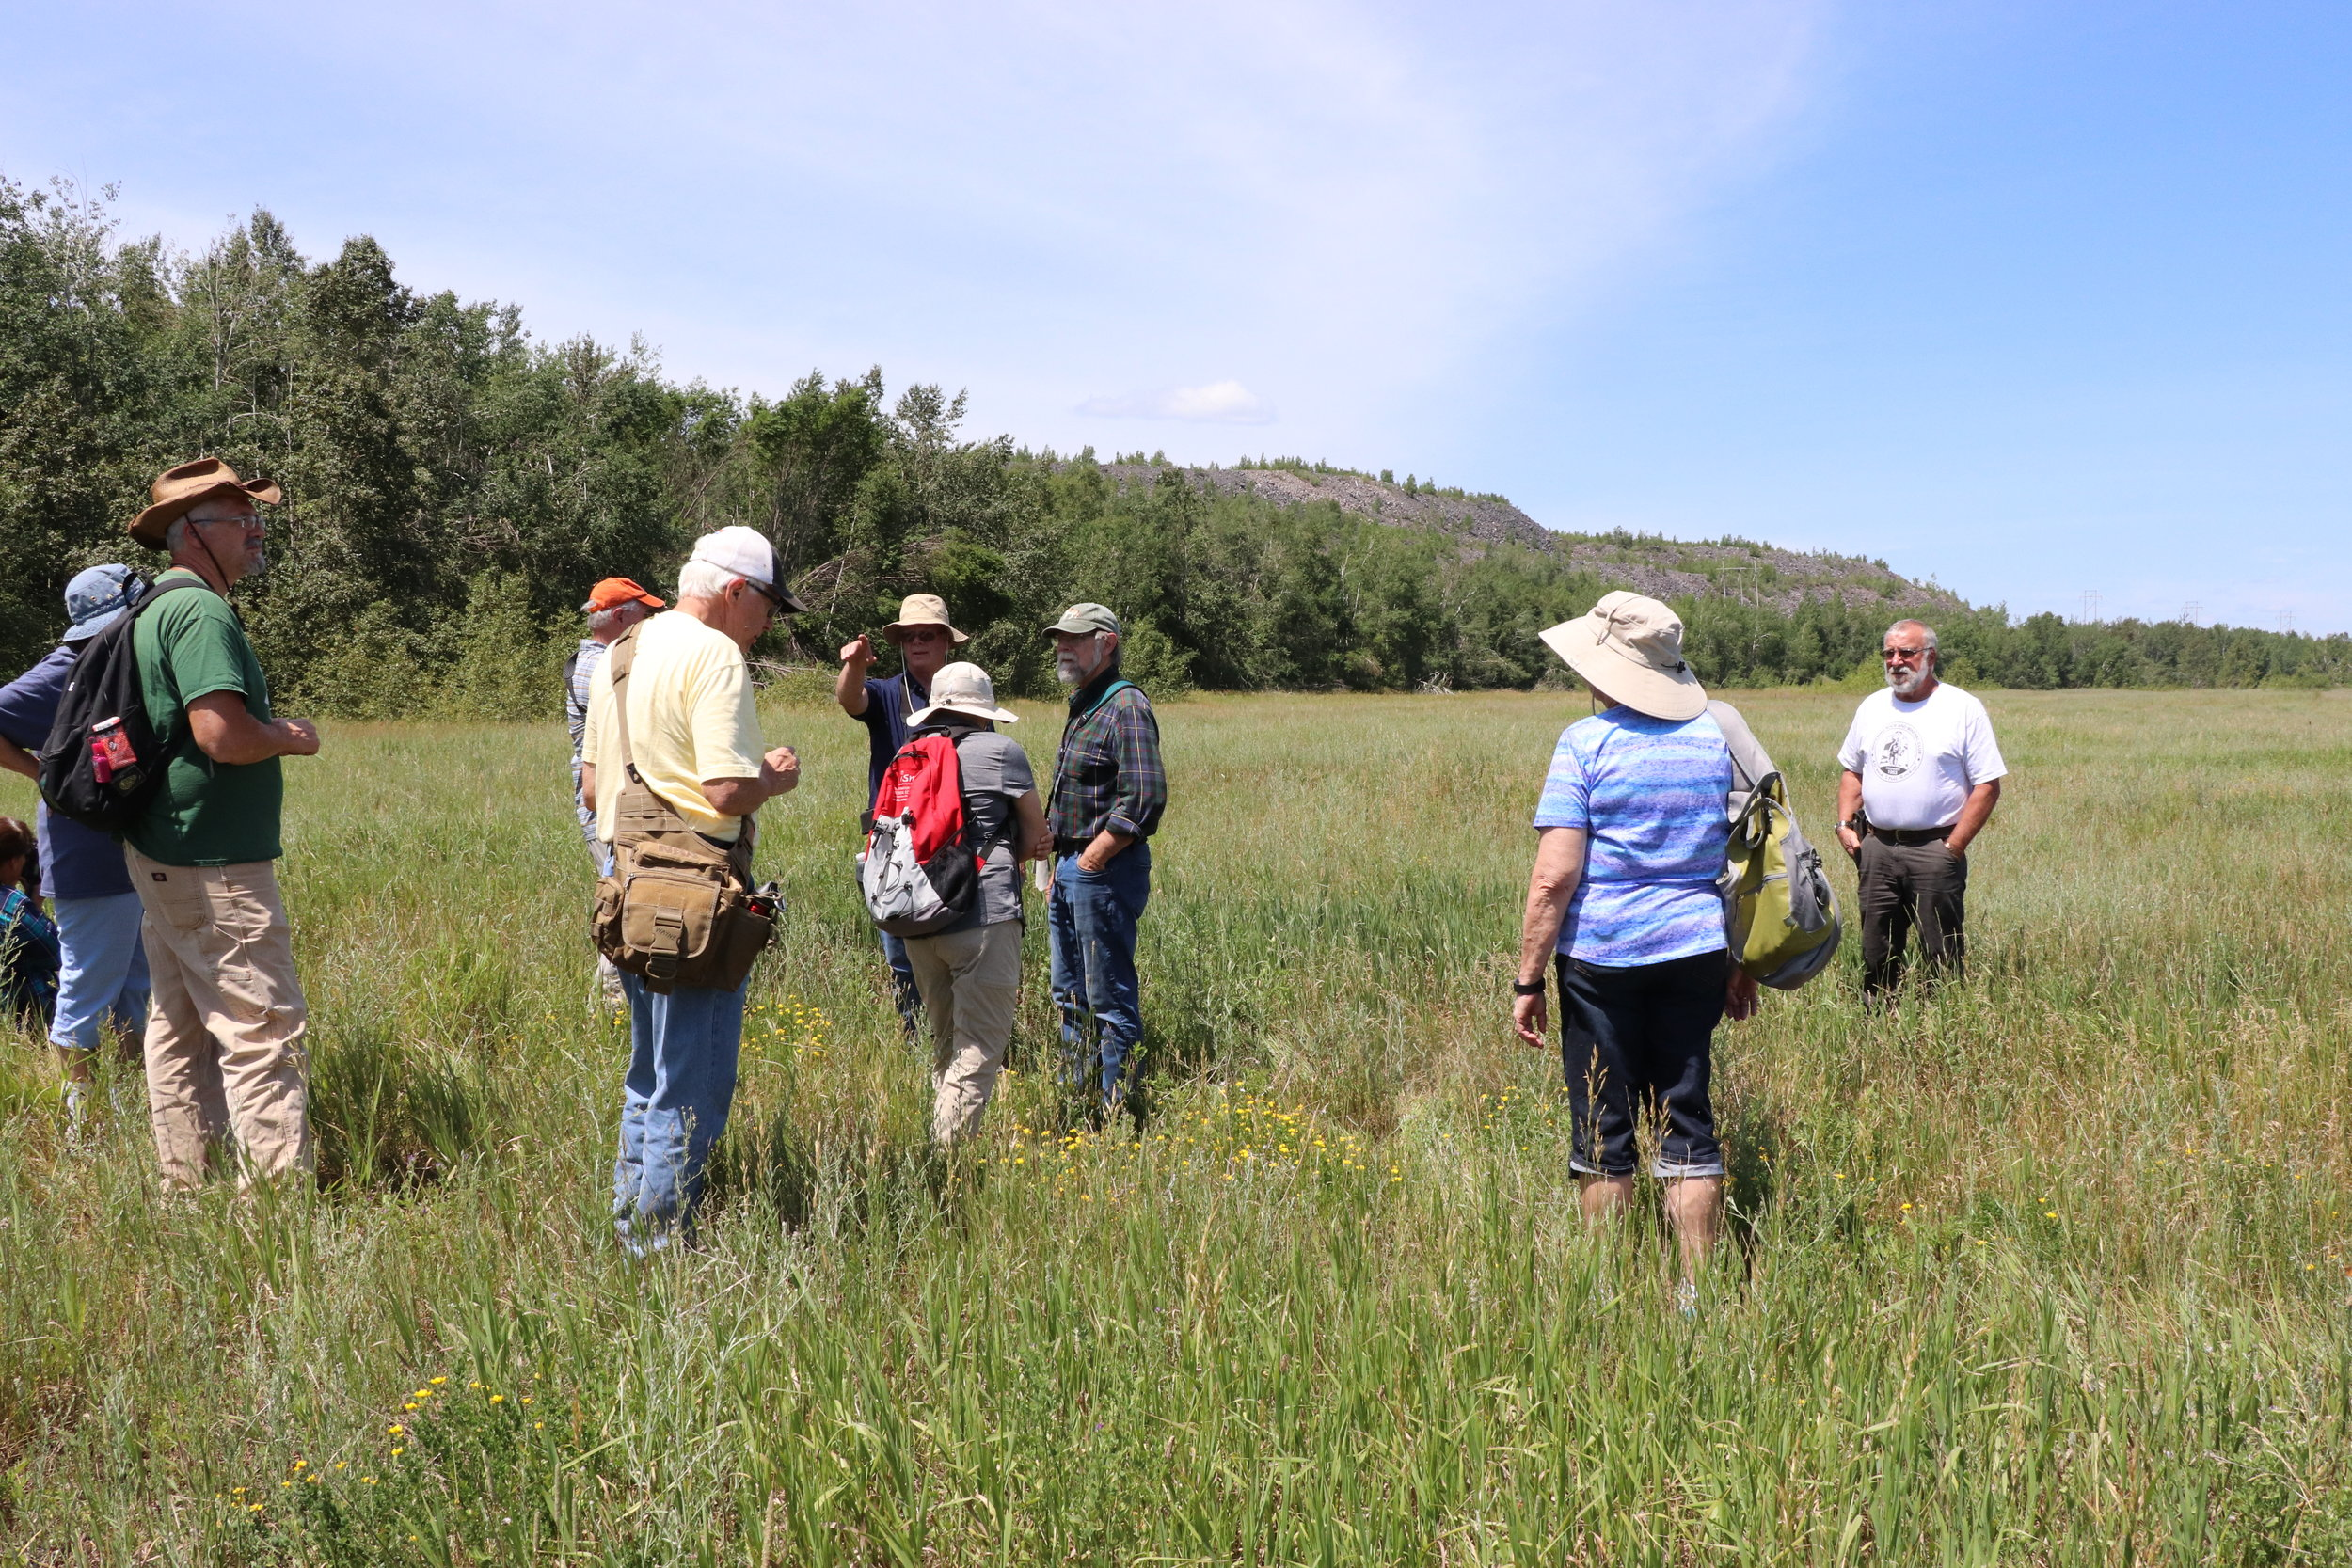 Former tailings basin converted to hay field to reduce fugitive dust issues. Plants observed included alfalfa, smooth brome grass, timothy grass, birds-foot trefoil, and spotted knapweed.